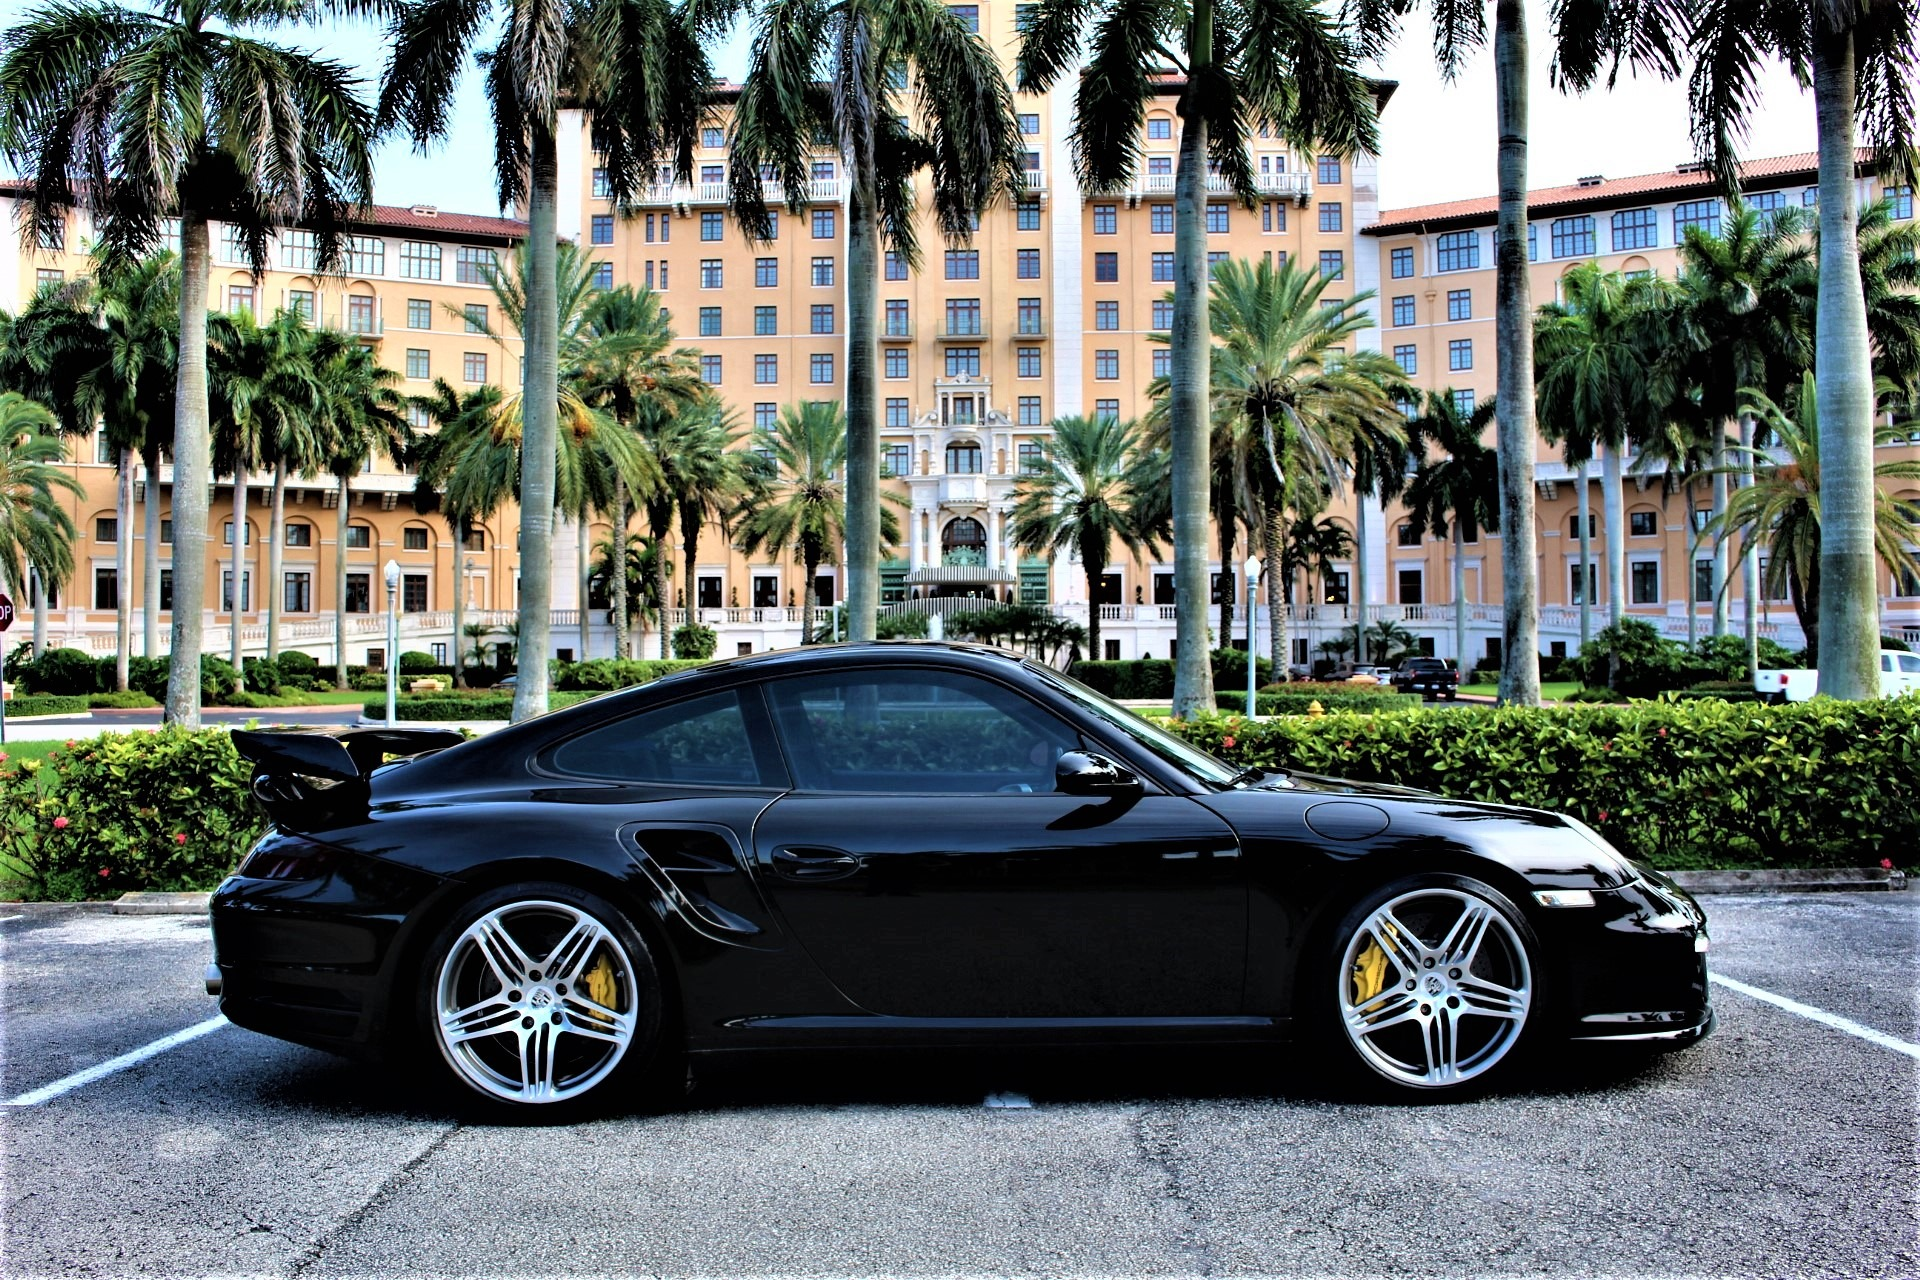 Used 2007 Porsche 911 Turbo for sale Sold at The Gables Sports Cars in Miami FL 33146 1